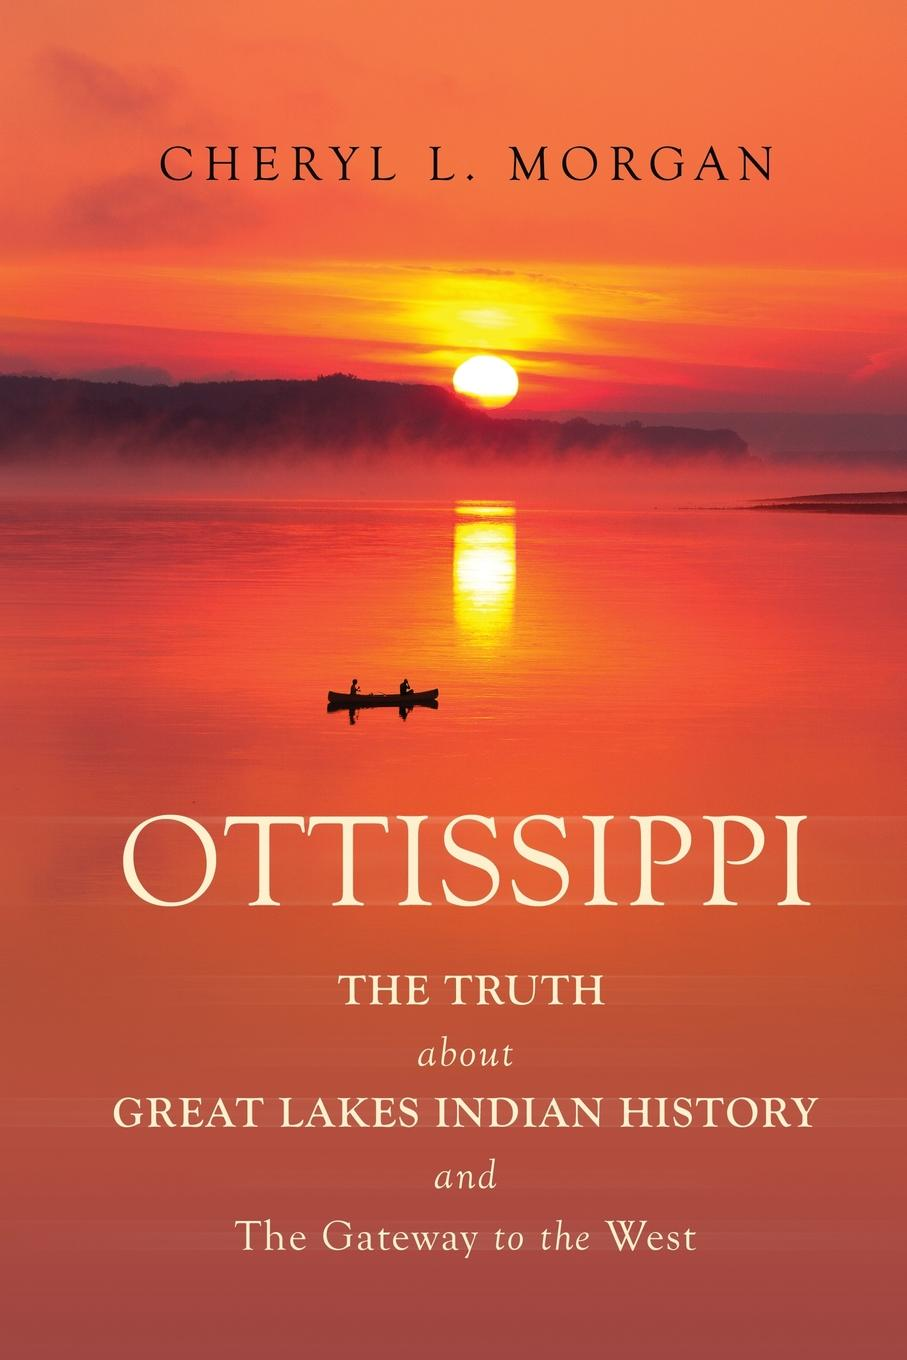 Cheryl L. Morgan OTTISSIPPI THE TRUTH about GREAT LAKES INDIAN HISTORY and The Gateway to the West charles richard tuttle the centennial northwest an illustrated history of the northwest being a full and complete civil political and military history of this great section of the united states from its earliest settlement to the present time